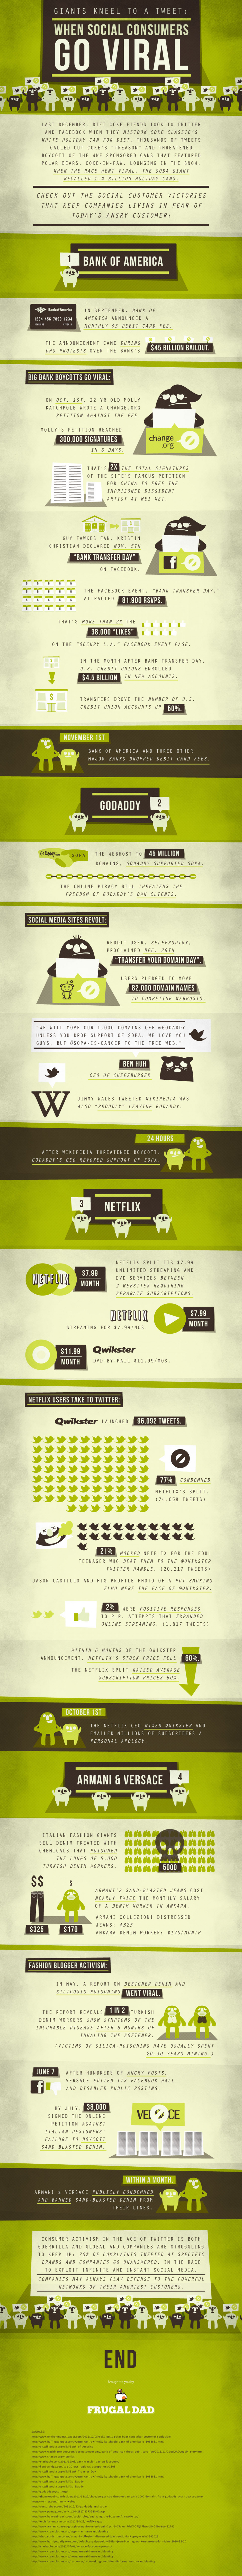 The Power of the Social Consumer  Infographic